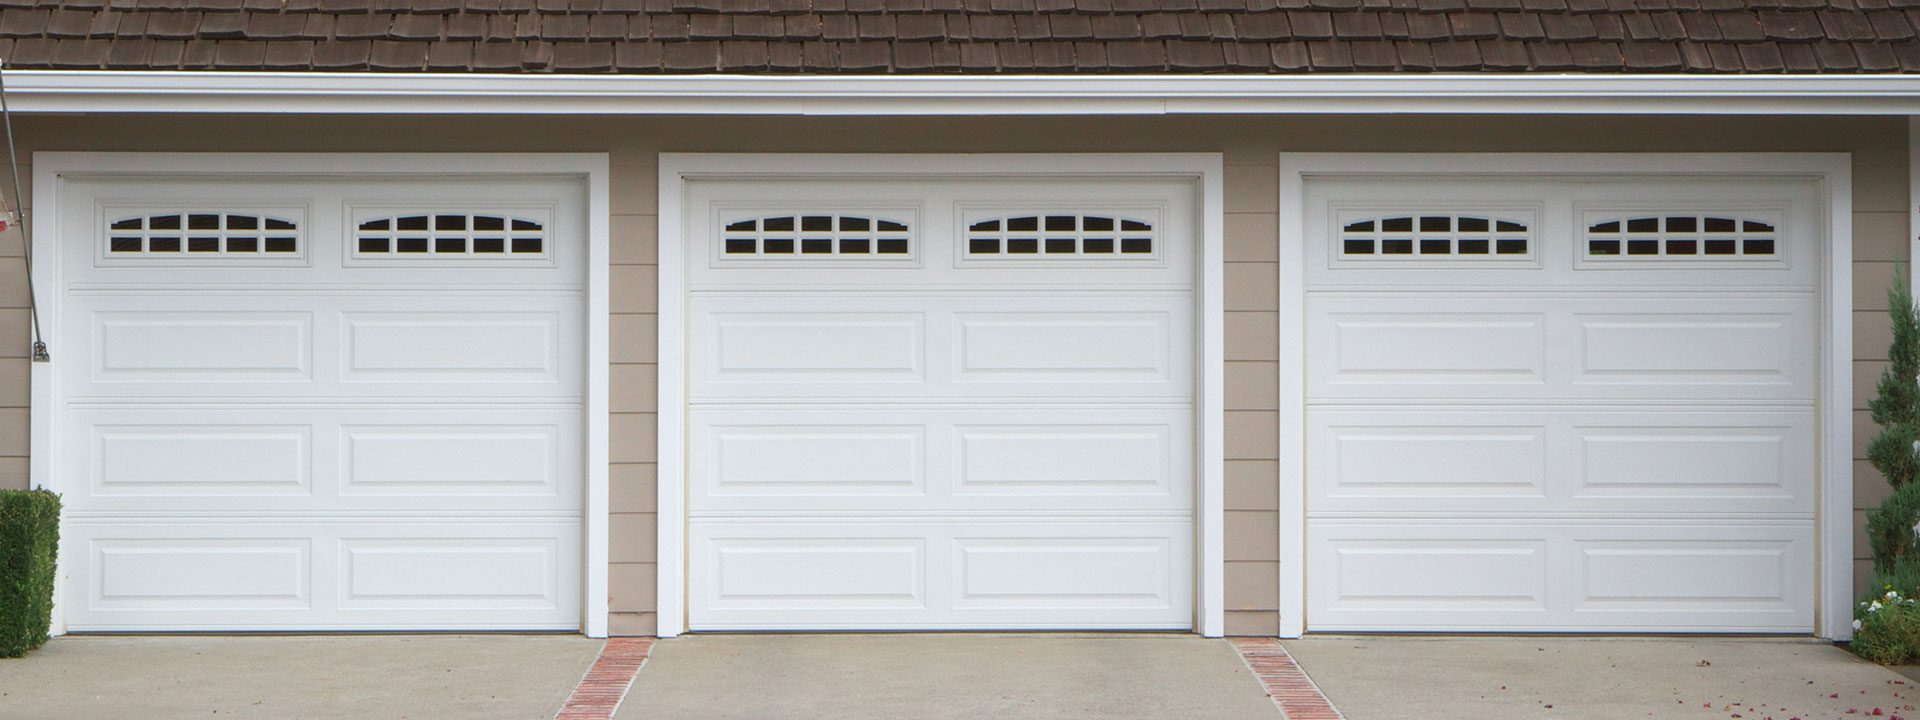 Canton GA Garage Door Repairs | Woodstock Garage Springs, Installation